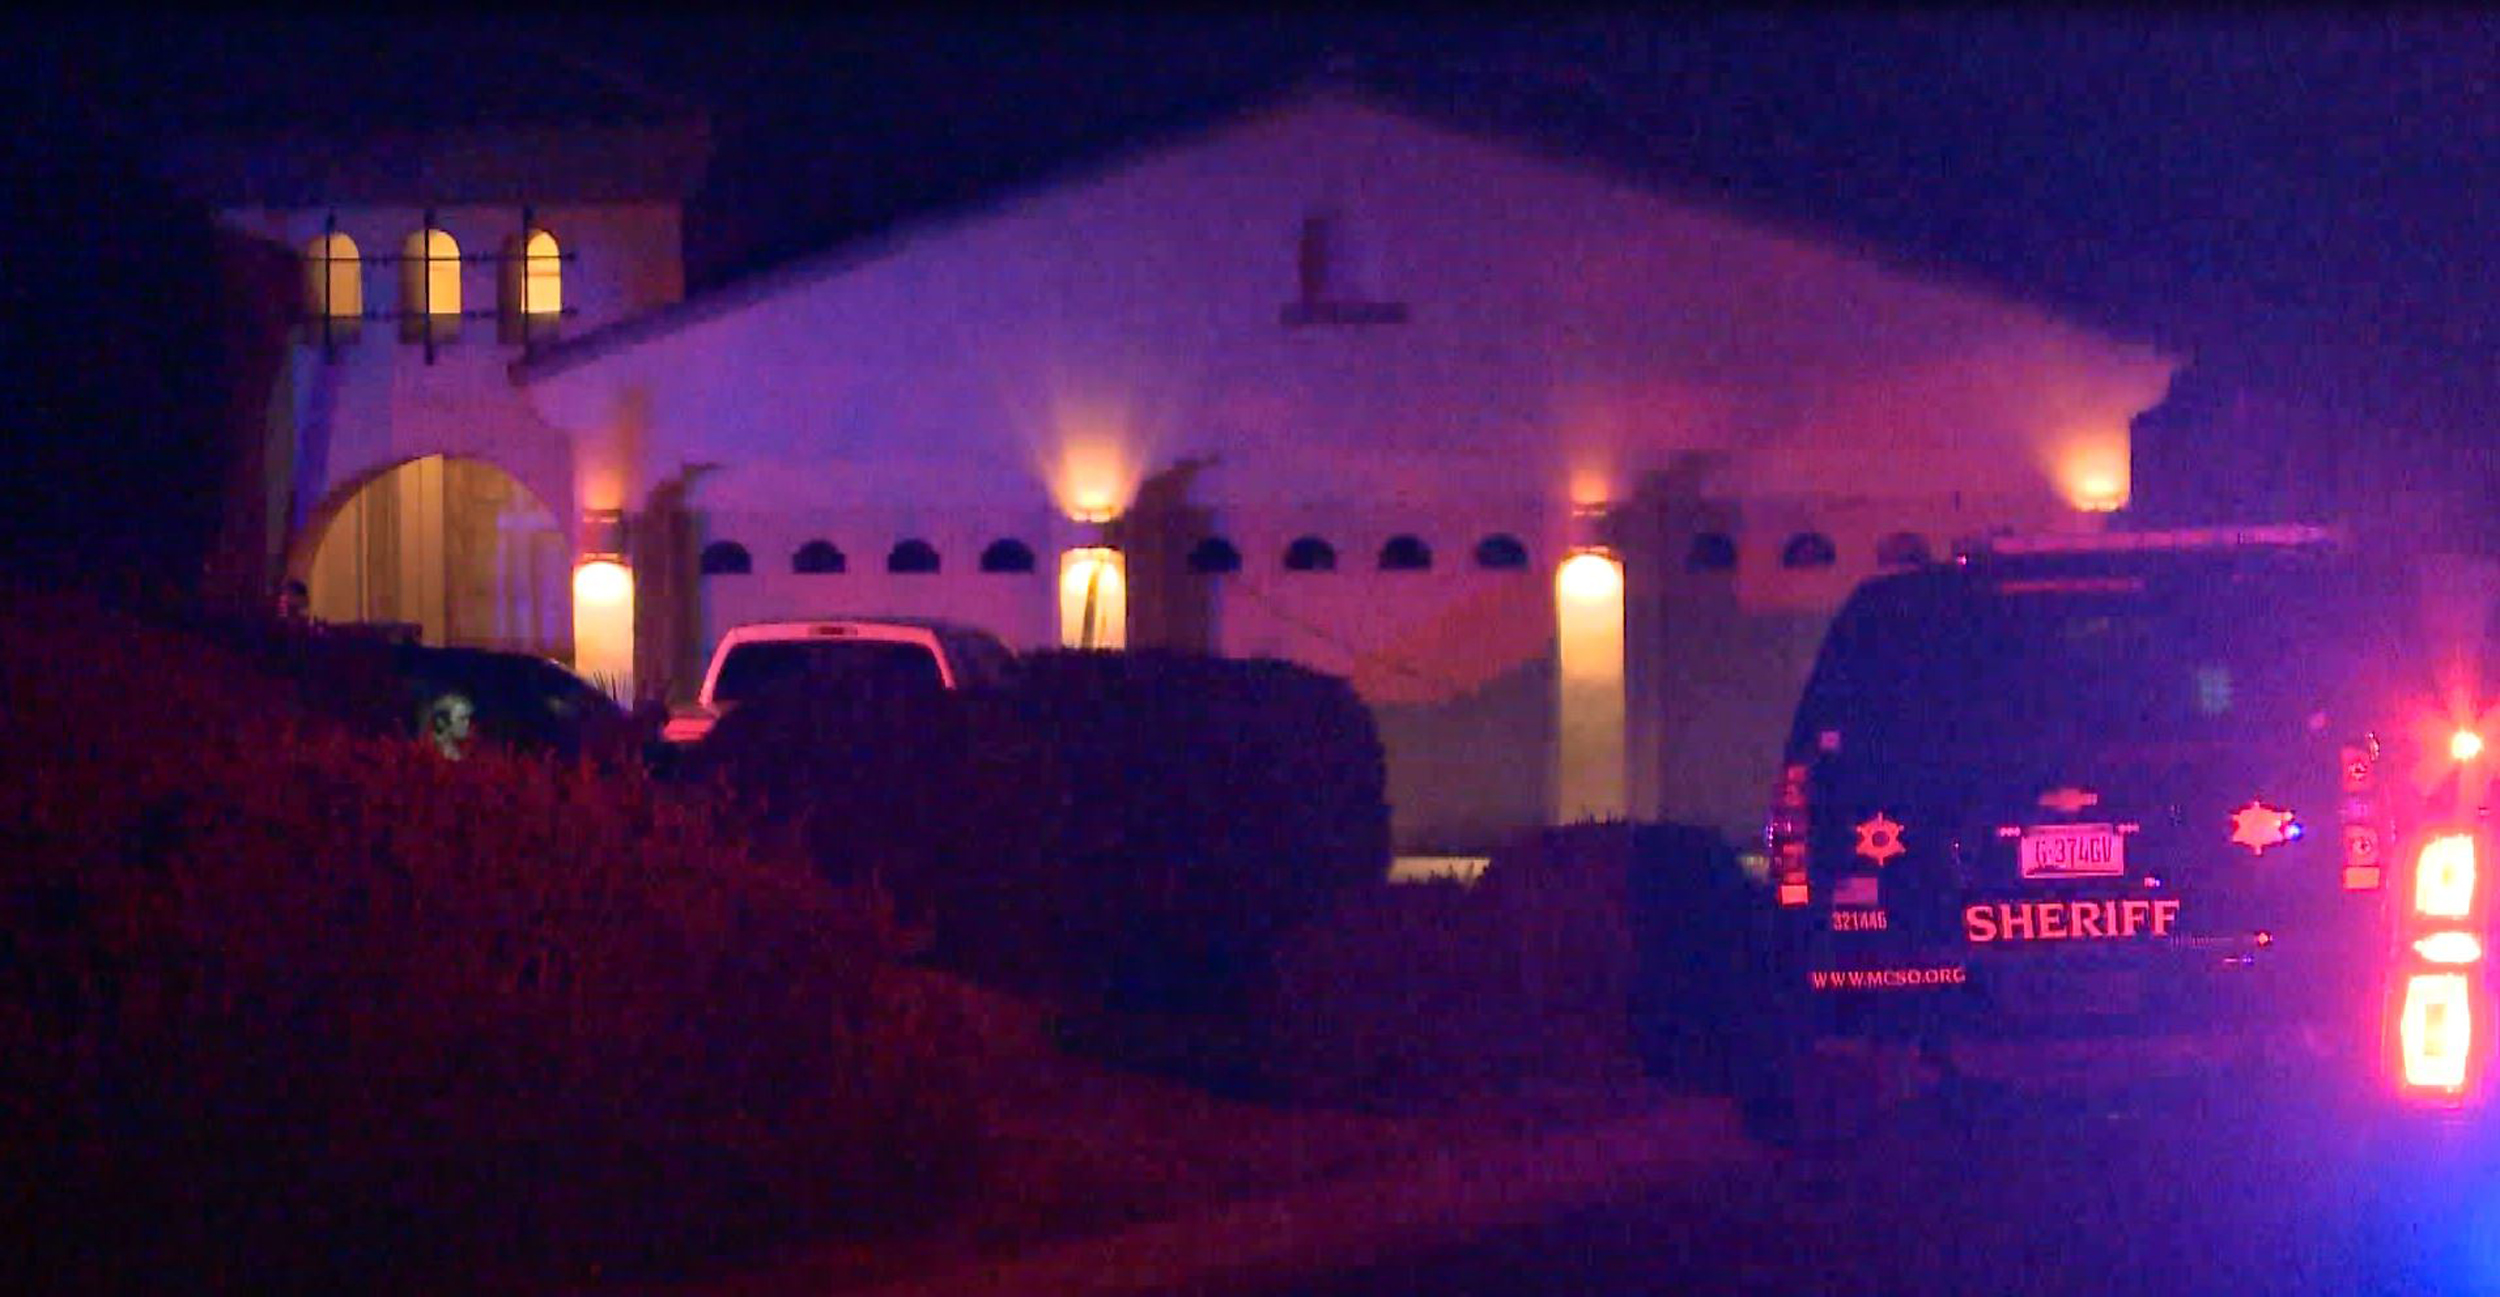 Arizona-boy-kills-grandmother,-self-after-being-asked-to-clean-room